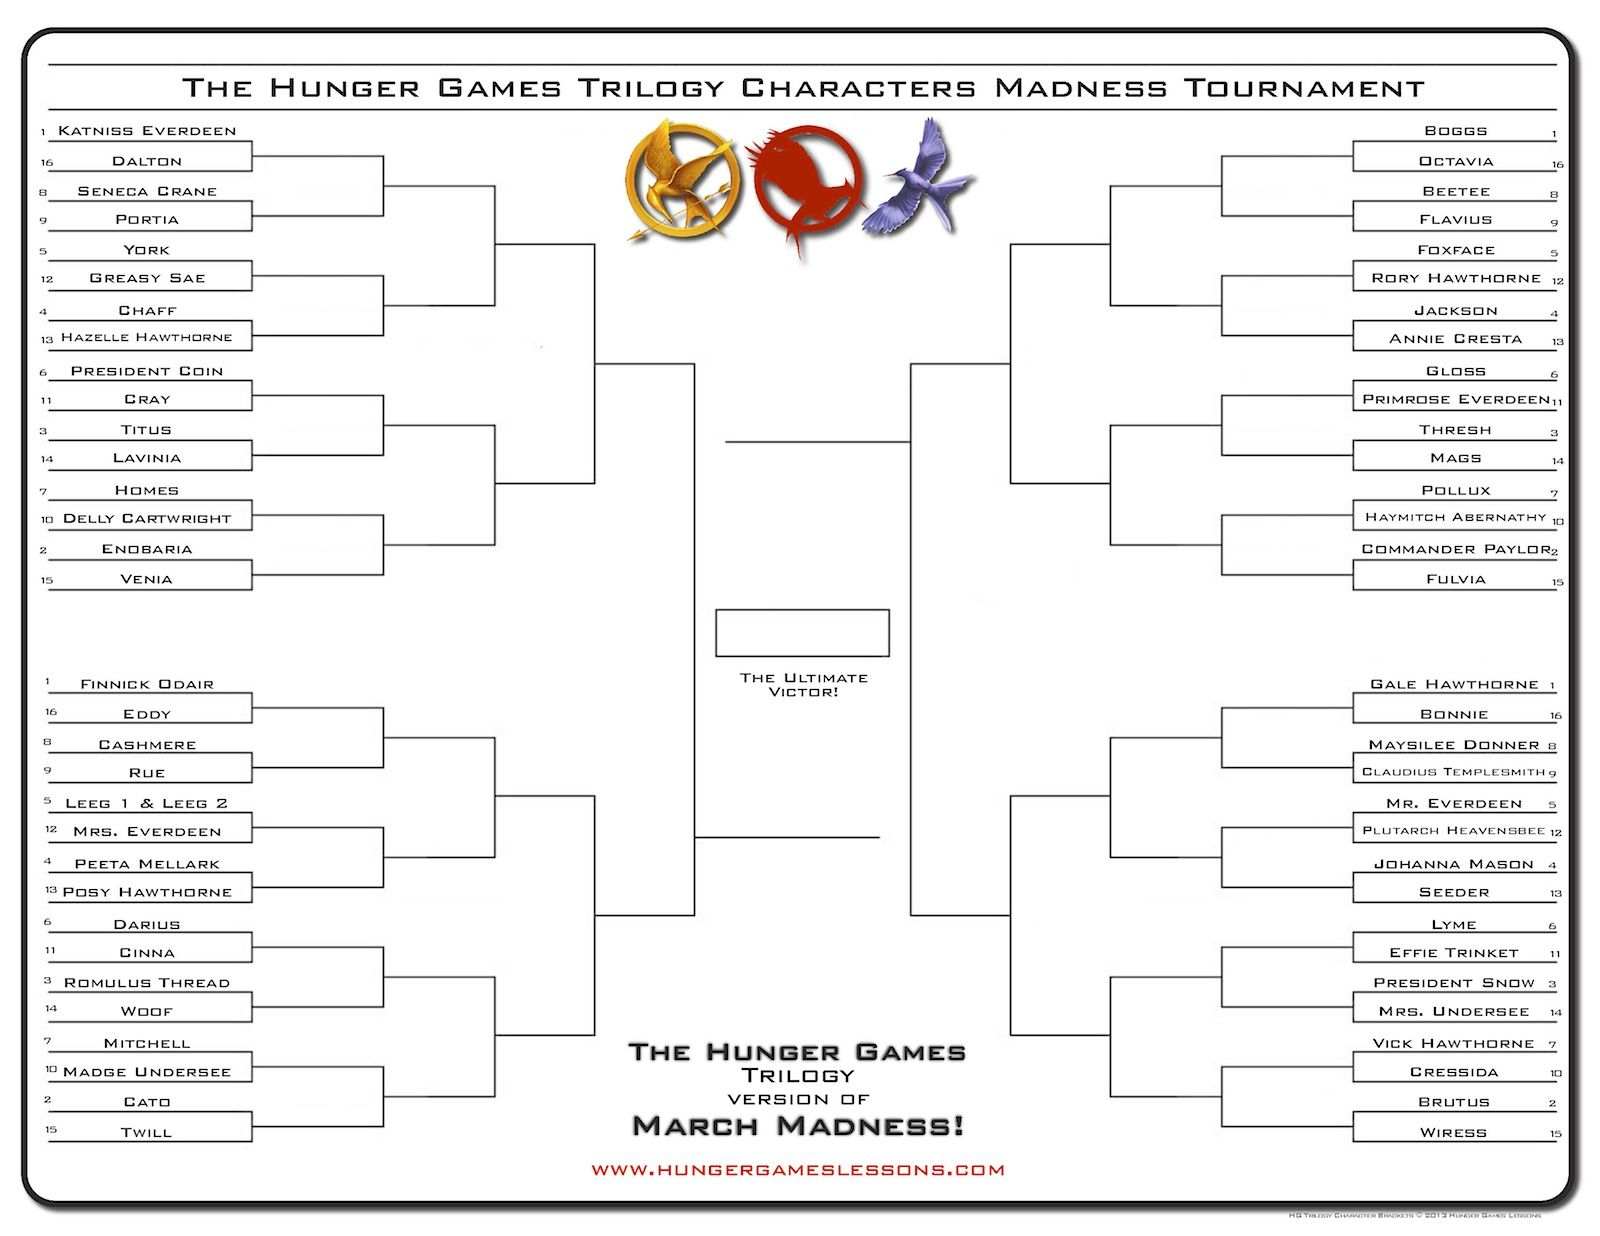 The Hunger Games Trilogy Tournament Bracket